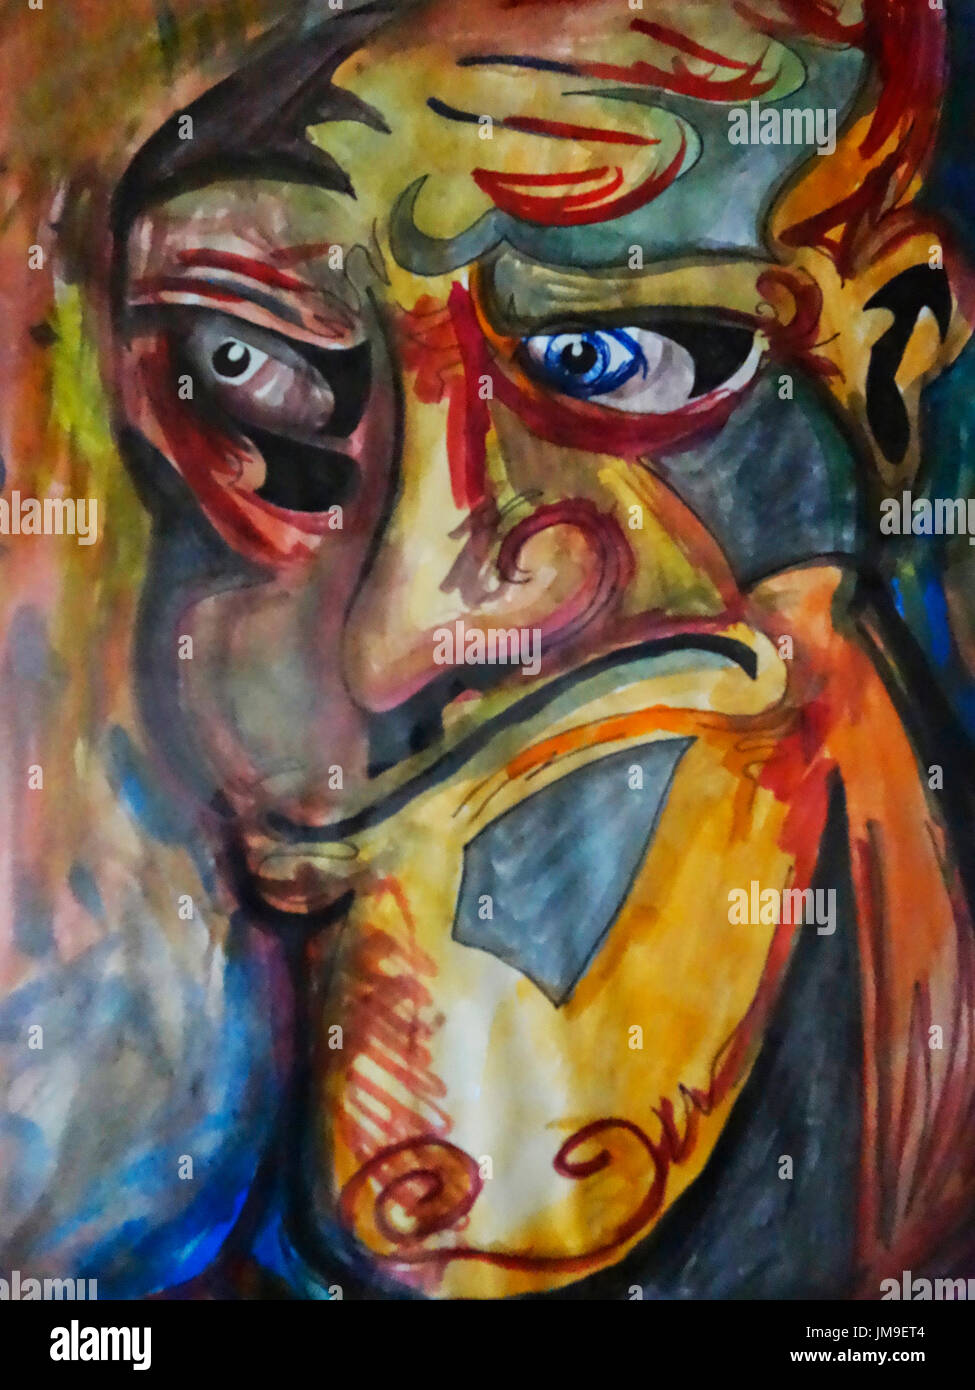 A Colourful Abstract Face Painting Stock Photo 150185284